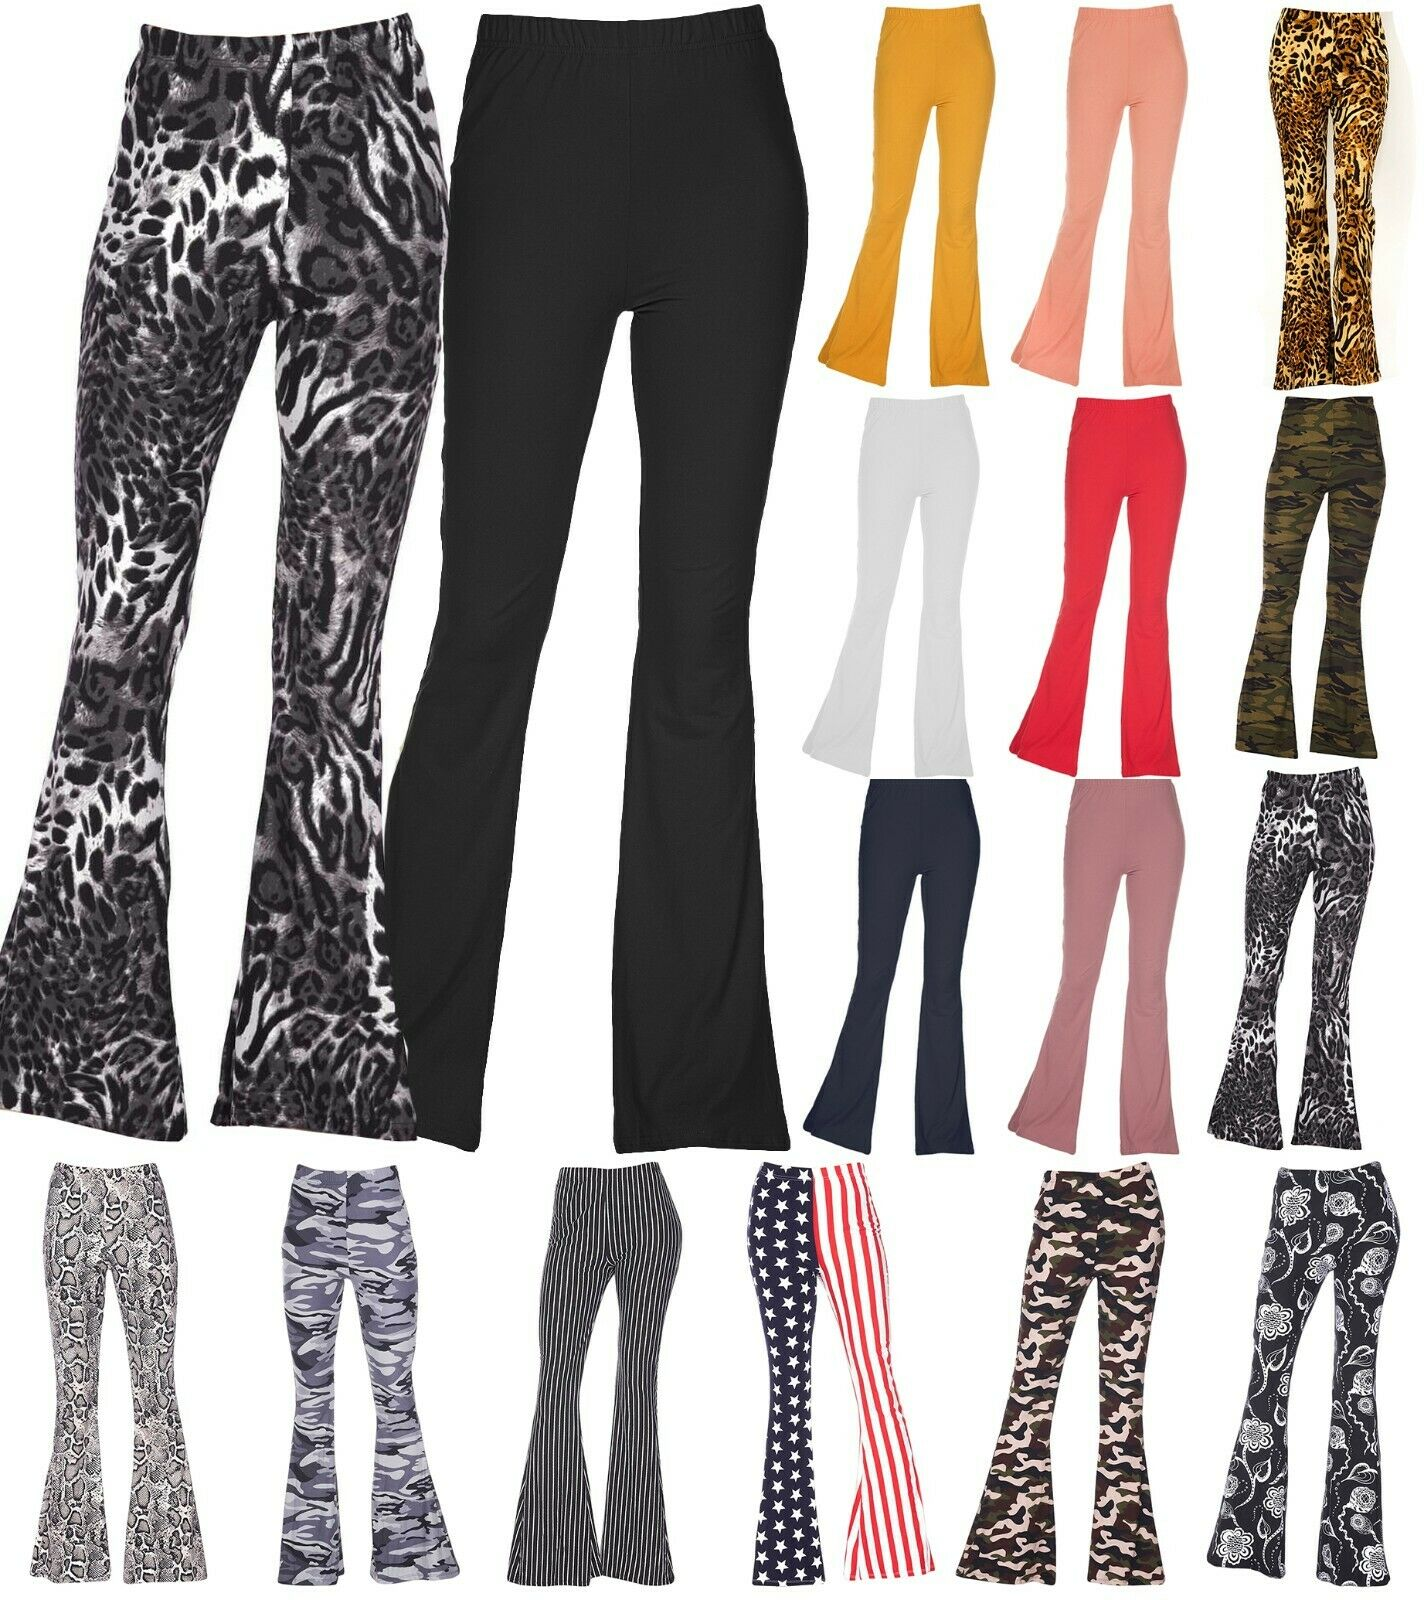 Womens Stretchy Bell Bottom Flare Palazzo Hippie Pants Clothing, Shoes & Accessories